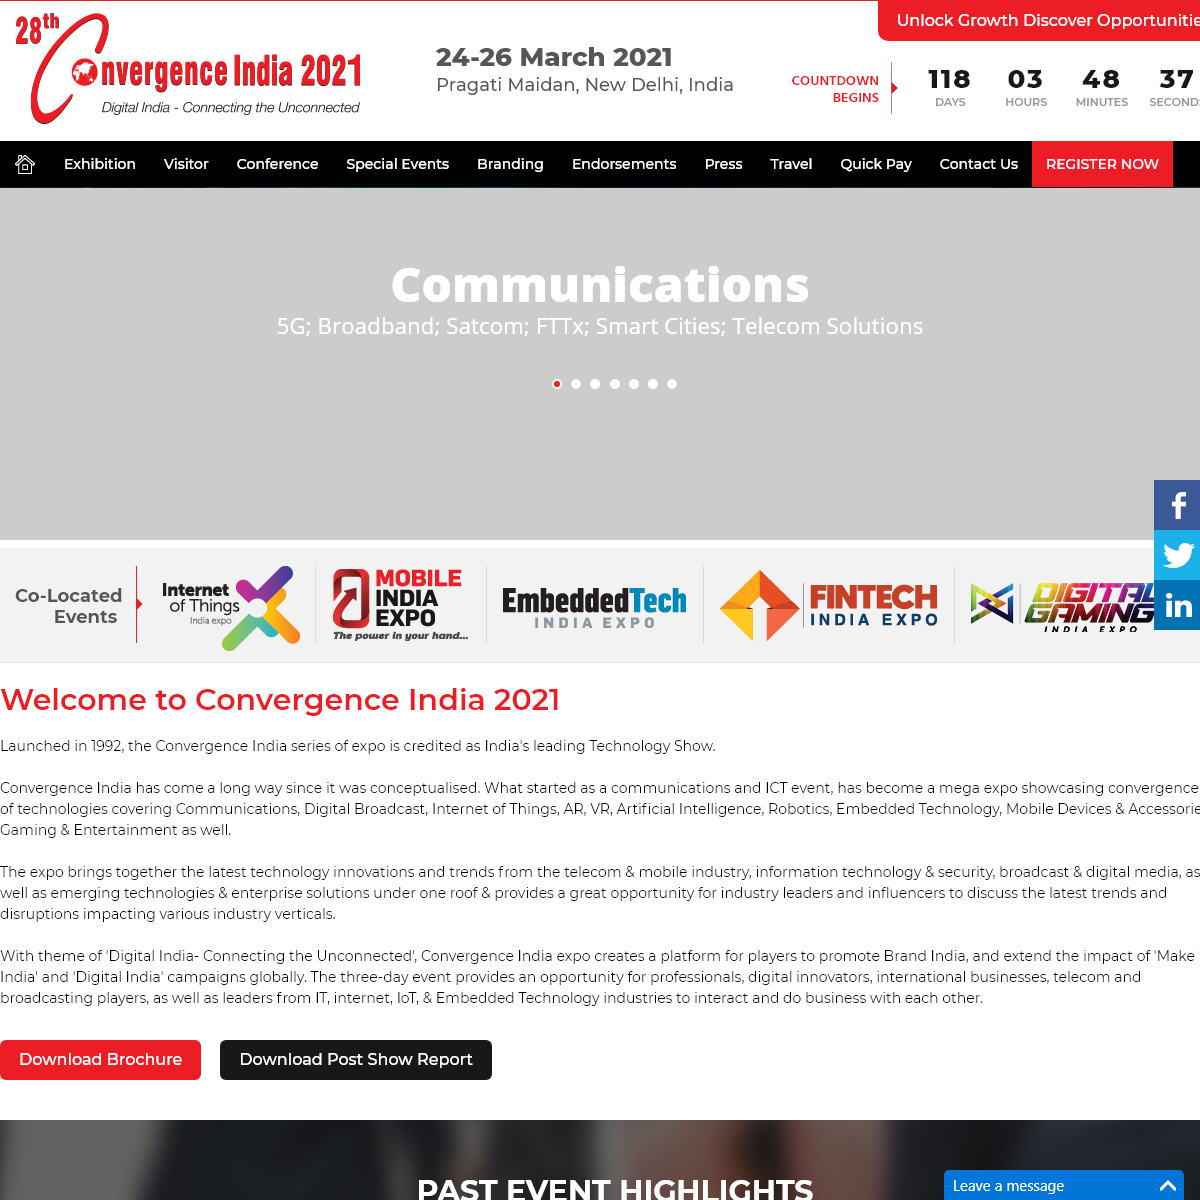 28th Convergence India 2021 - International Exhibitions, Expo and Conference in India 2021